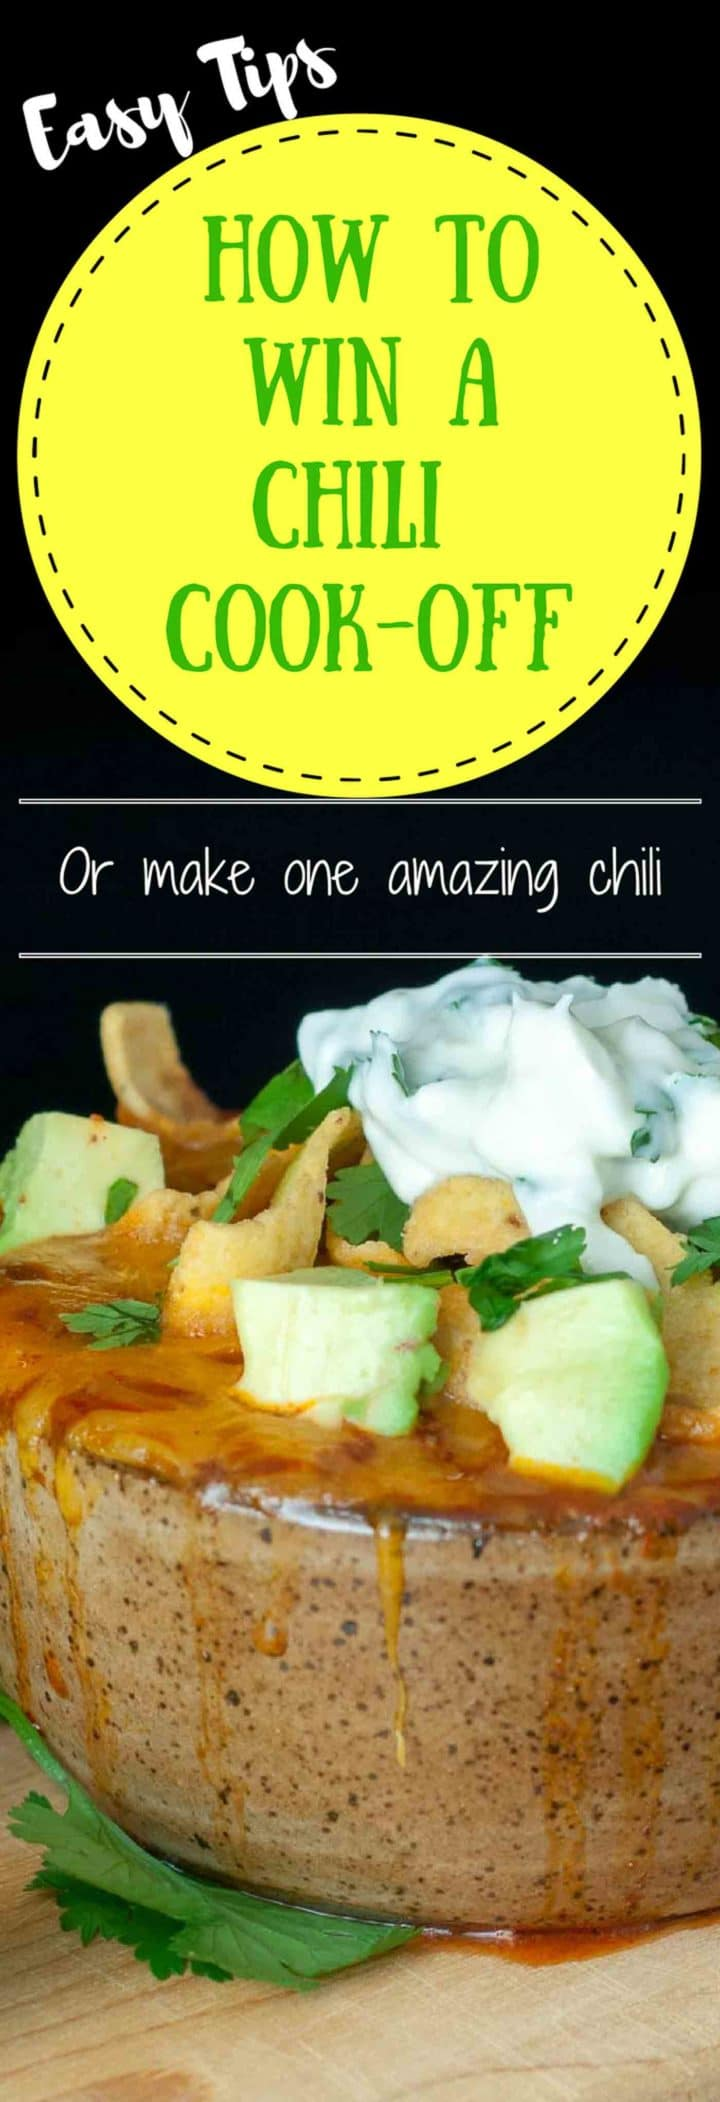 A Chorizo Chicken Chili with Lime Cilantro Sour Cream recipe and tons of useful tips on how to win a chili cook-off or just make an extraordinary chili https://www.mamagourmand.com